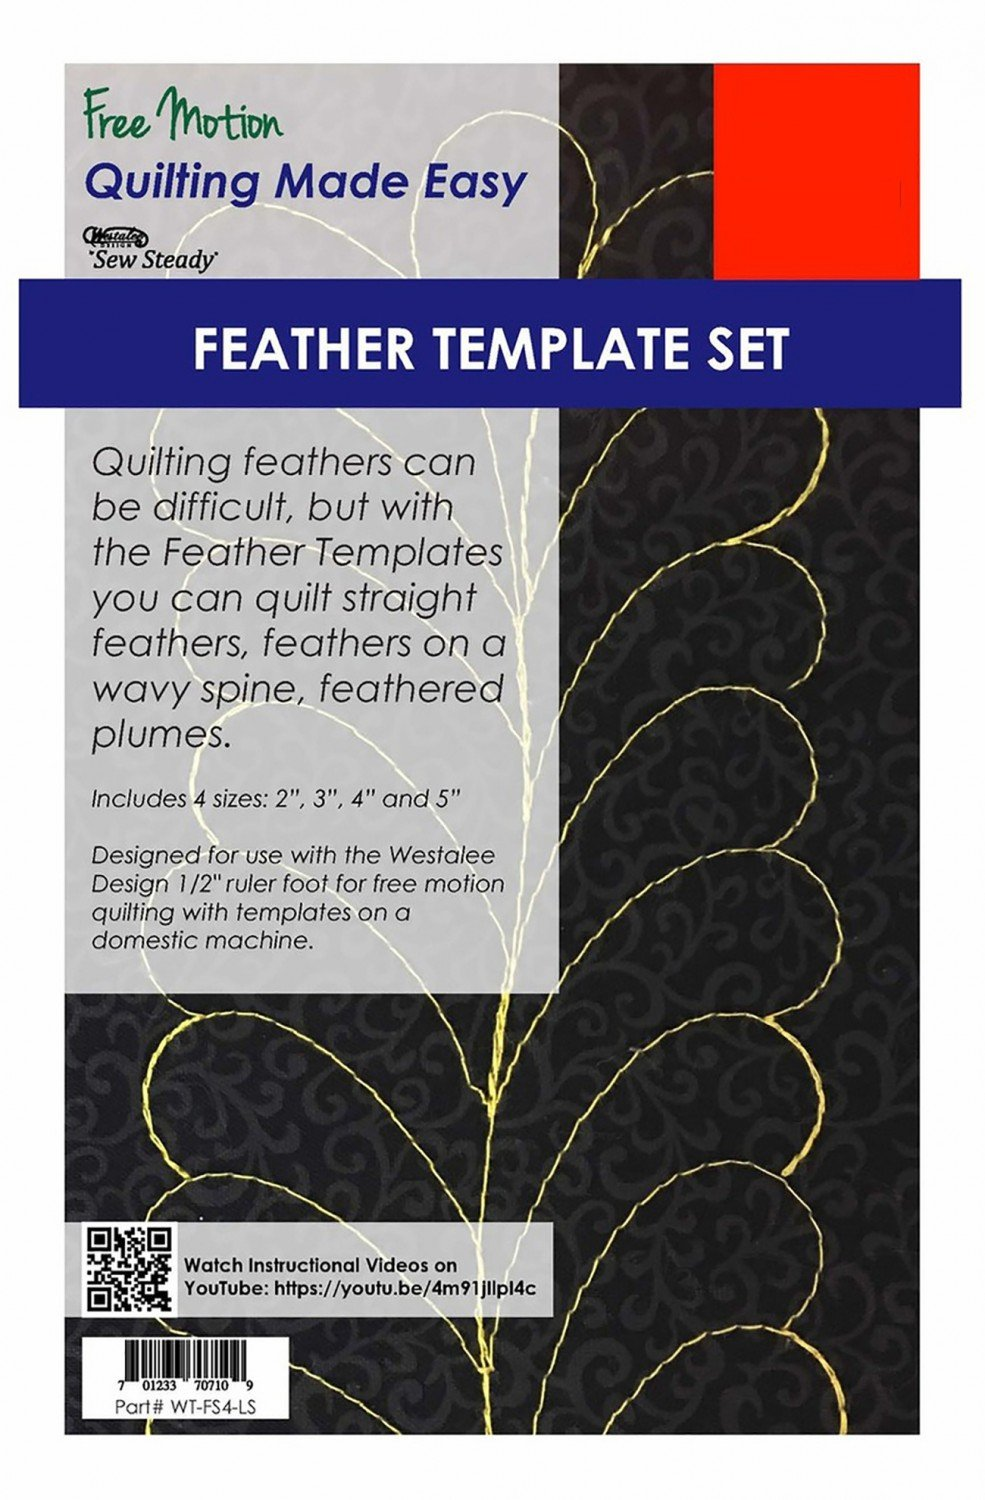 4 Piece Feather Template Set - Low Shank